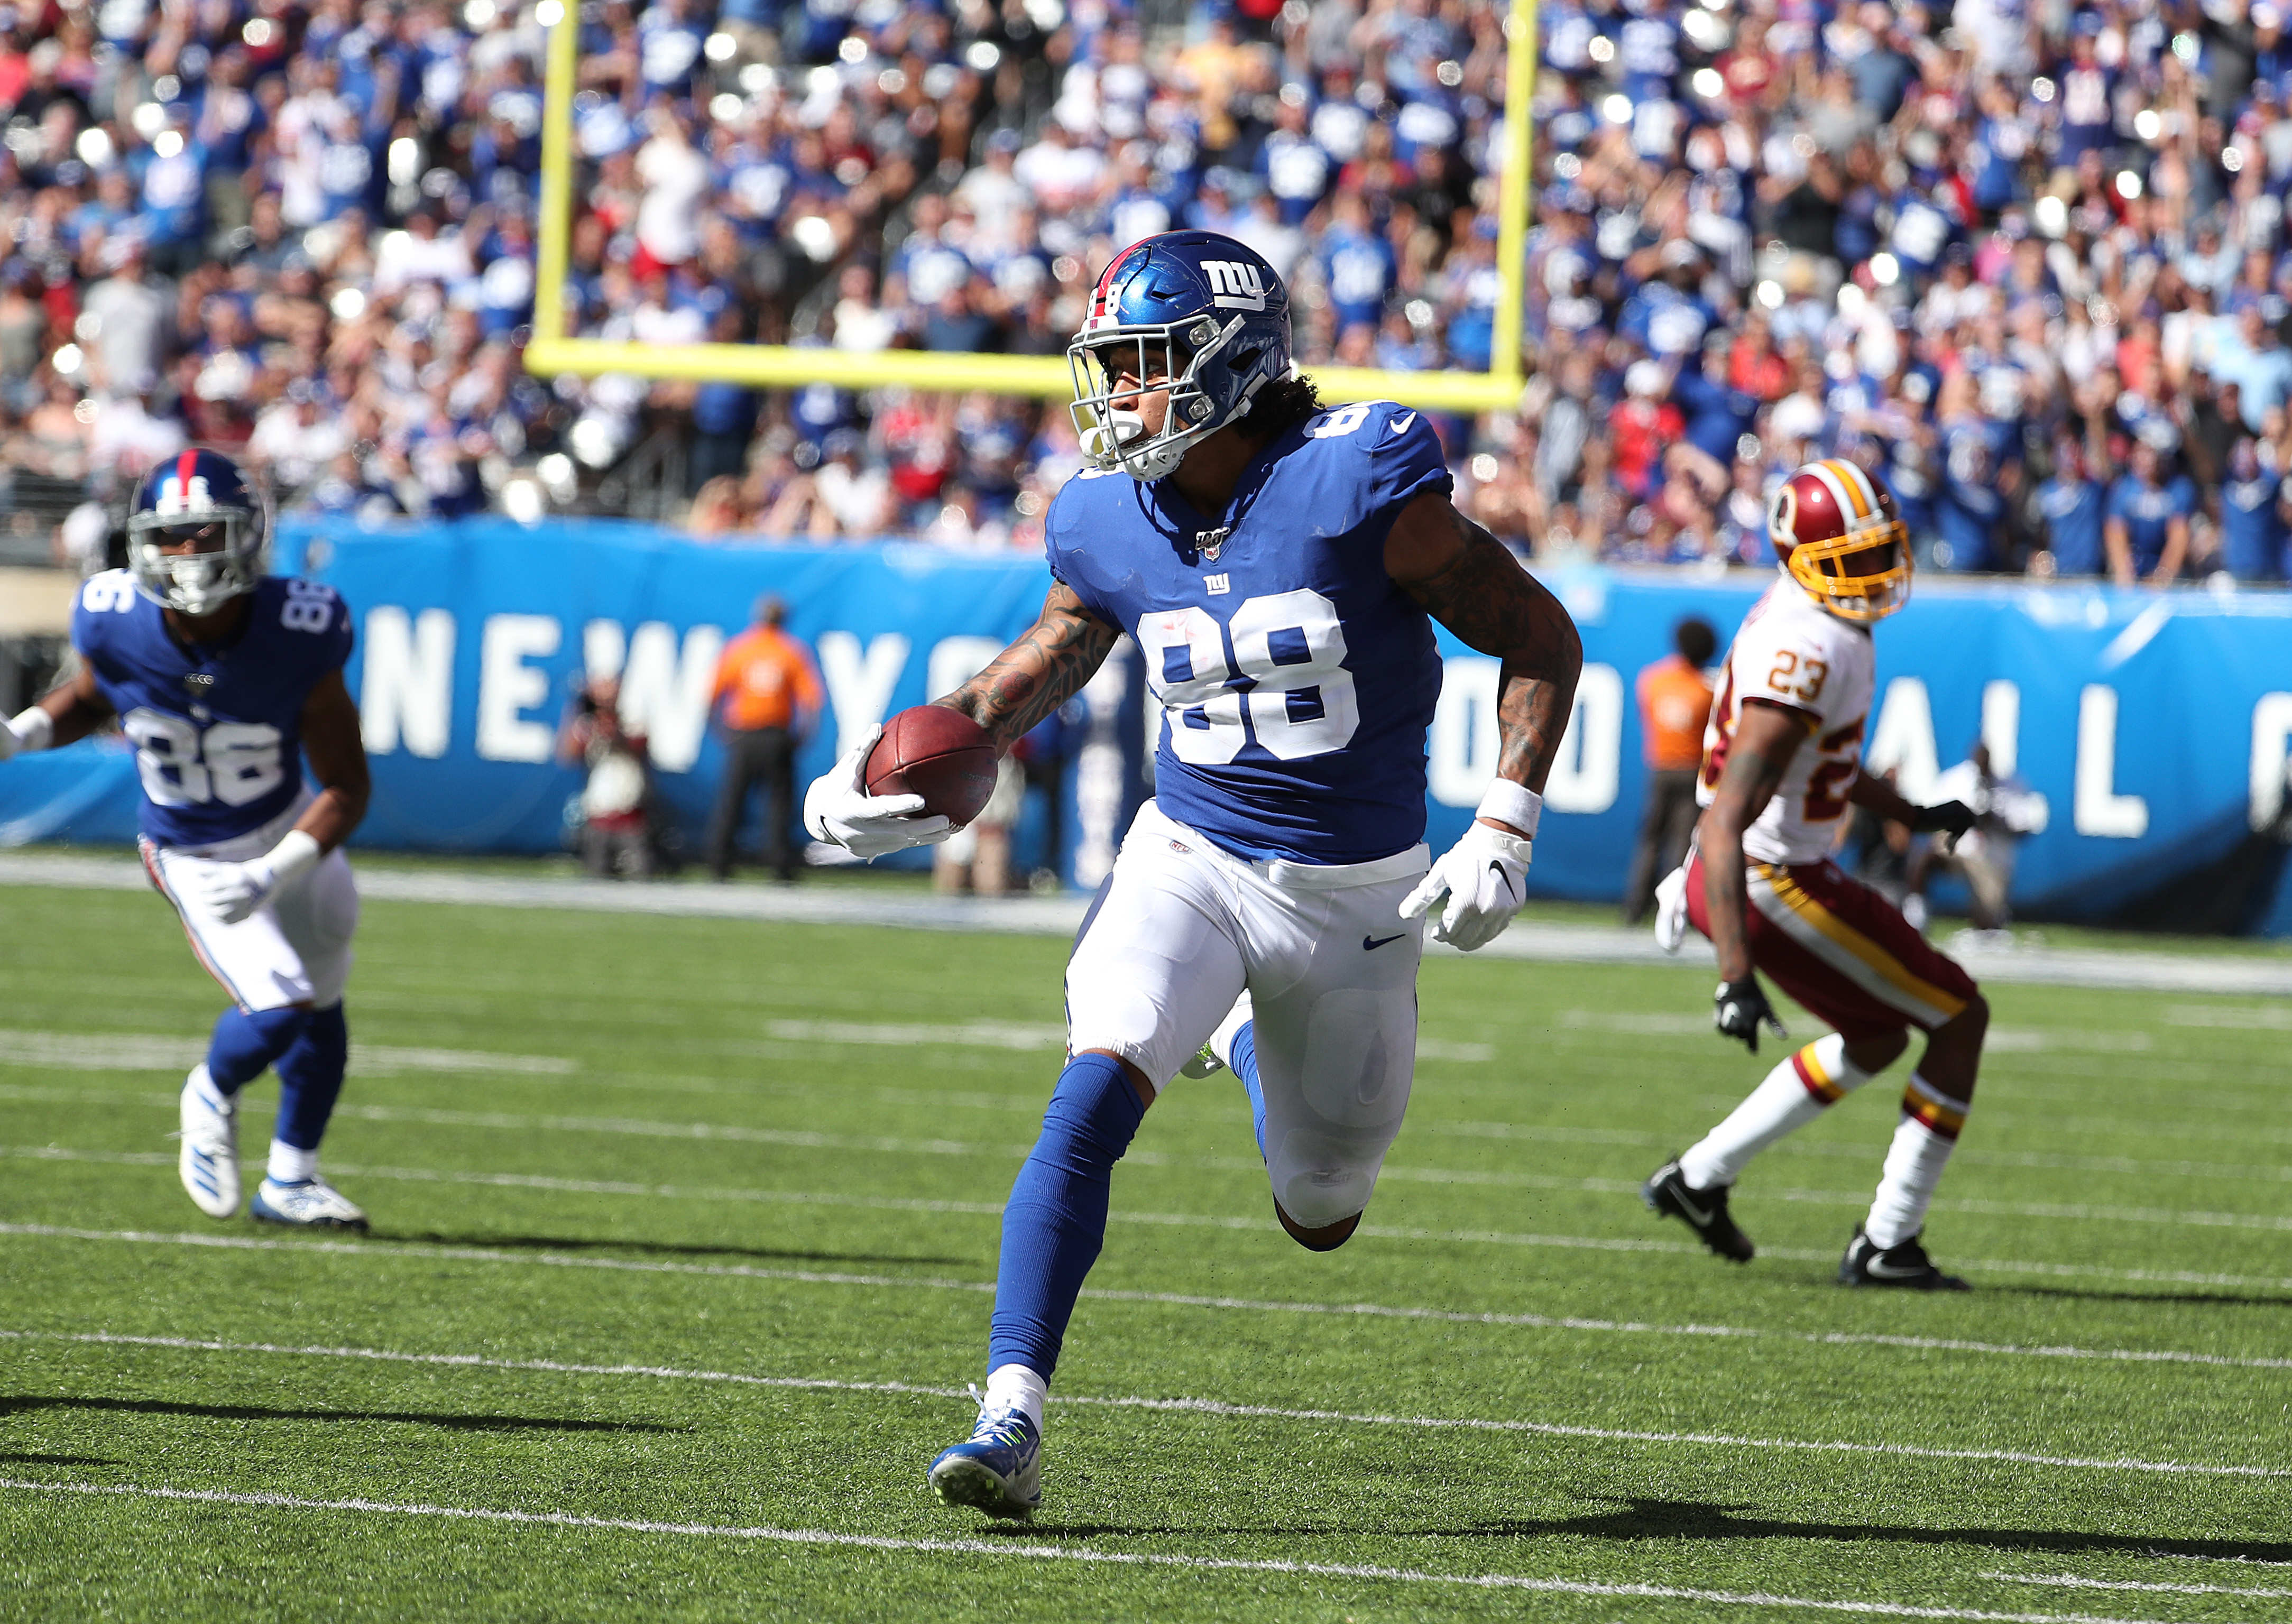 Evan Engram of the New York Giants in action against Washington during their game at MetLife Stadium on September 29, 2019 in East Rutherford, New Jersey.